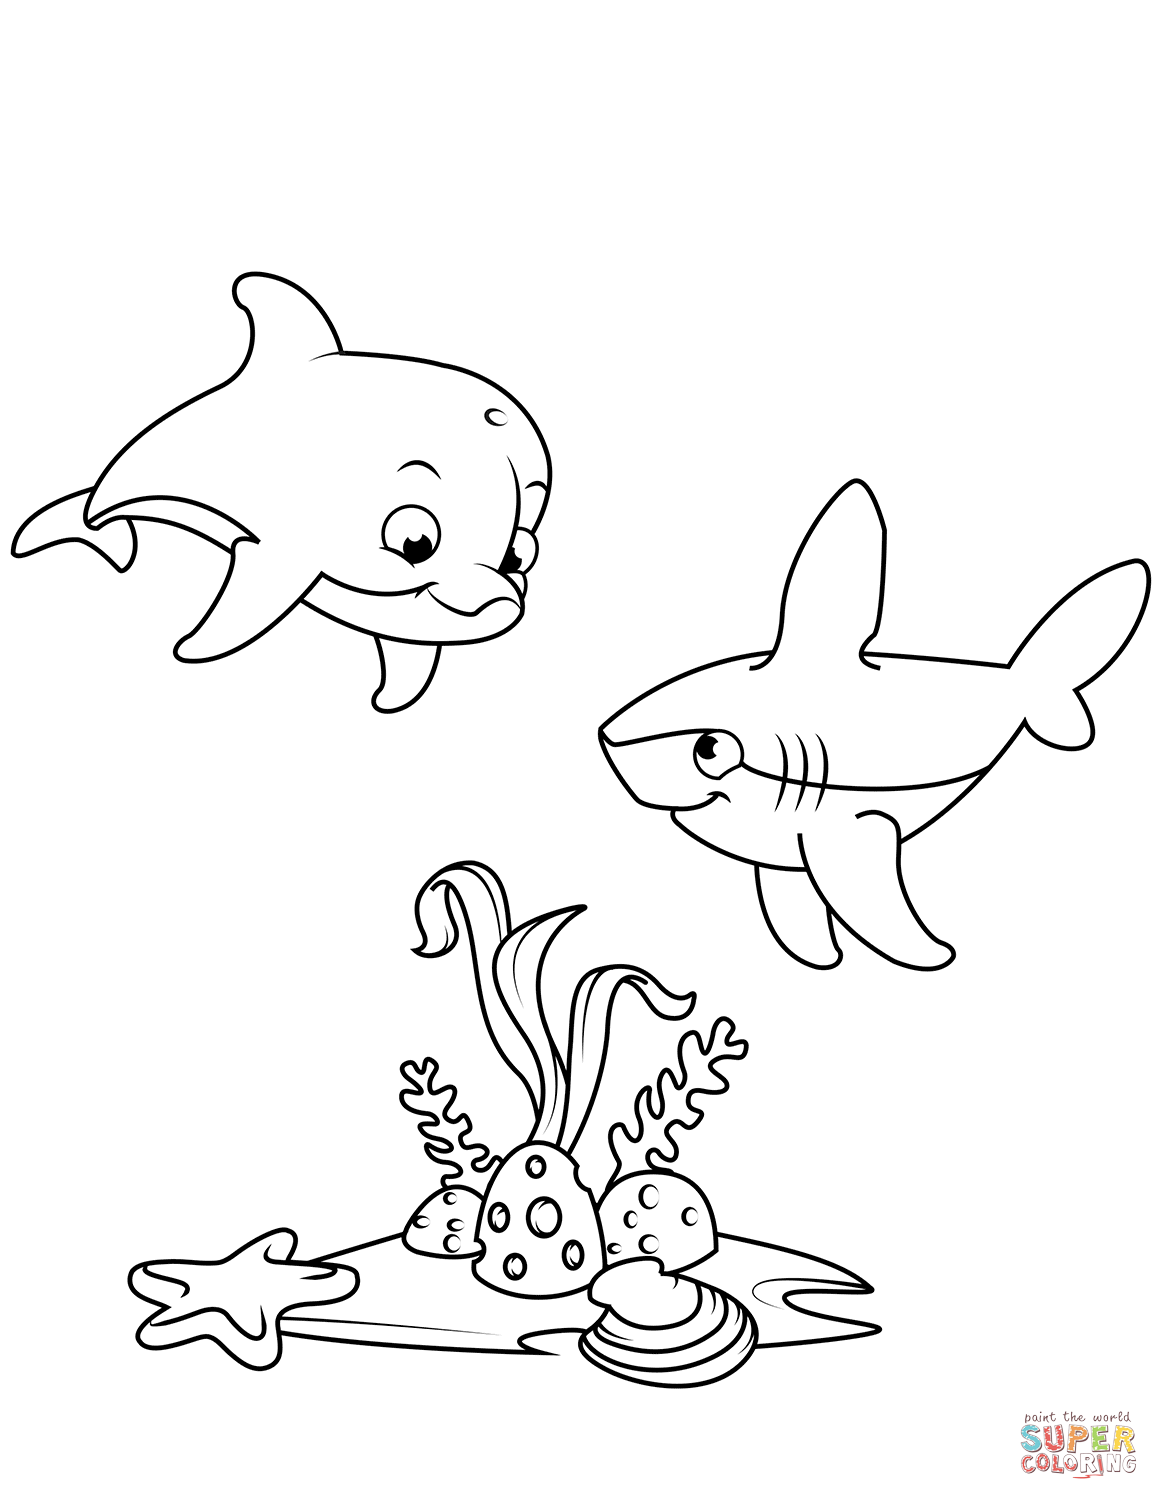 Cute Dolphin And Shark Coloring Page Free Printable Coloring Pages